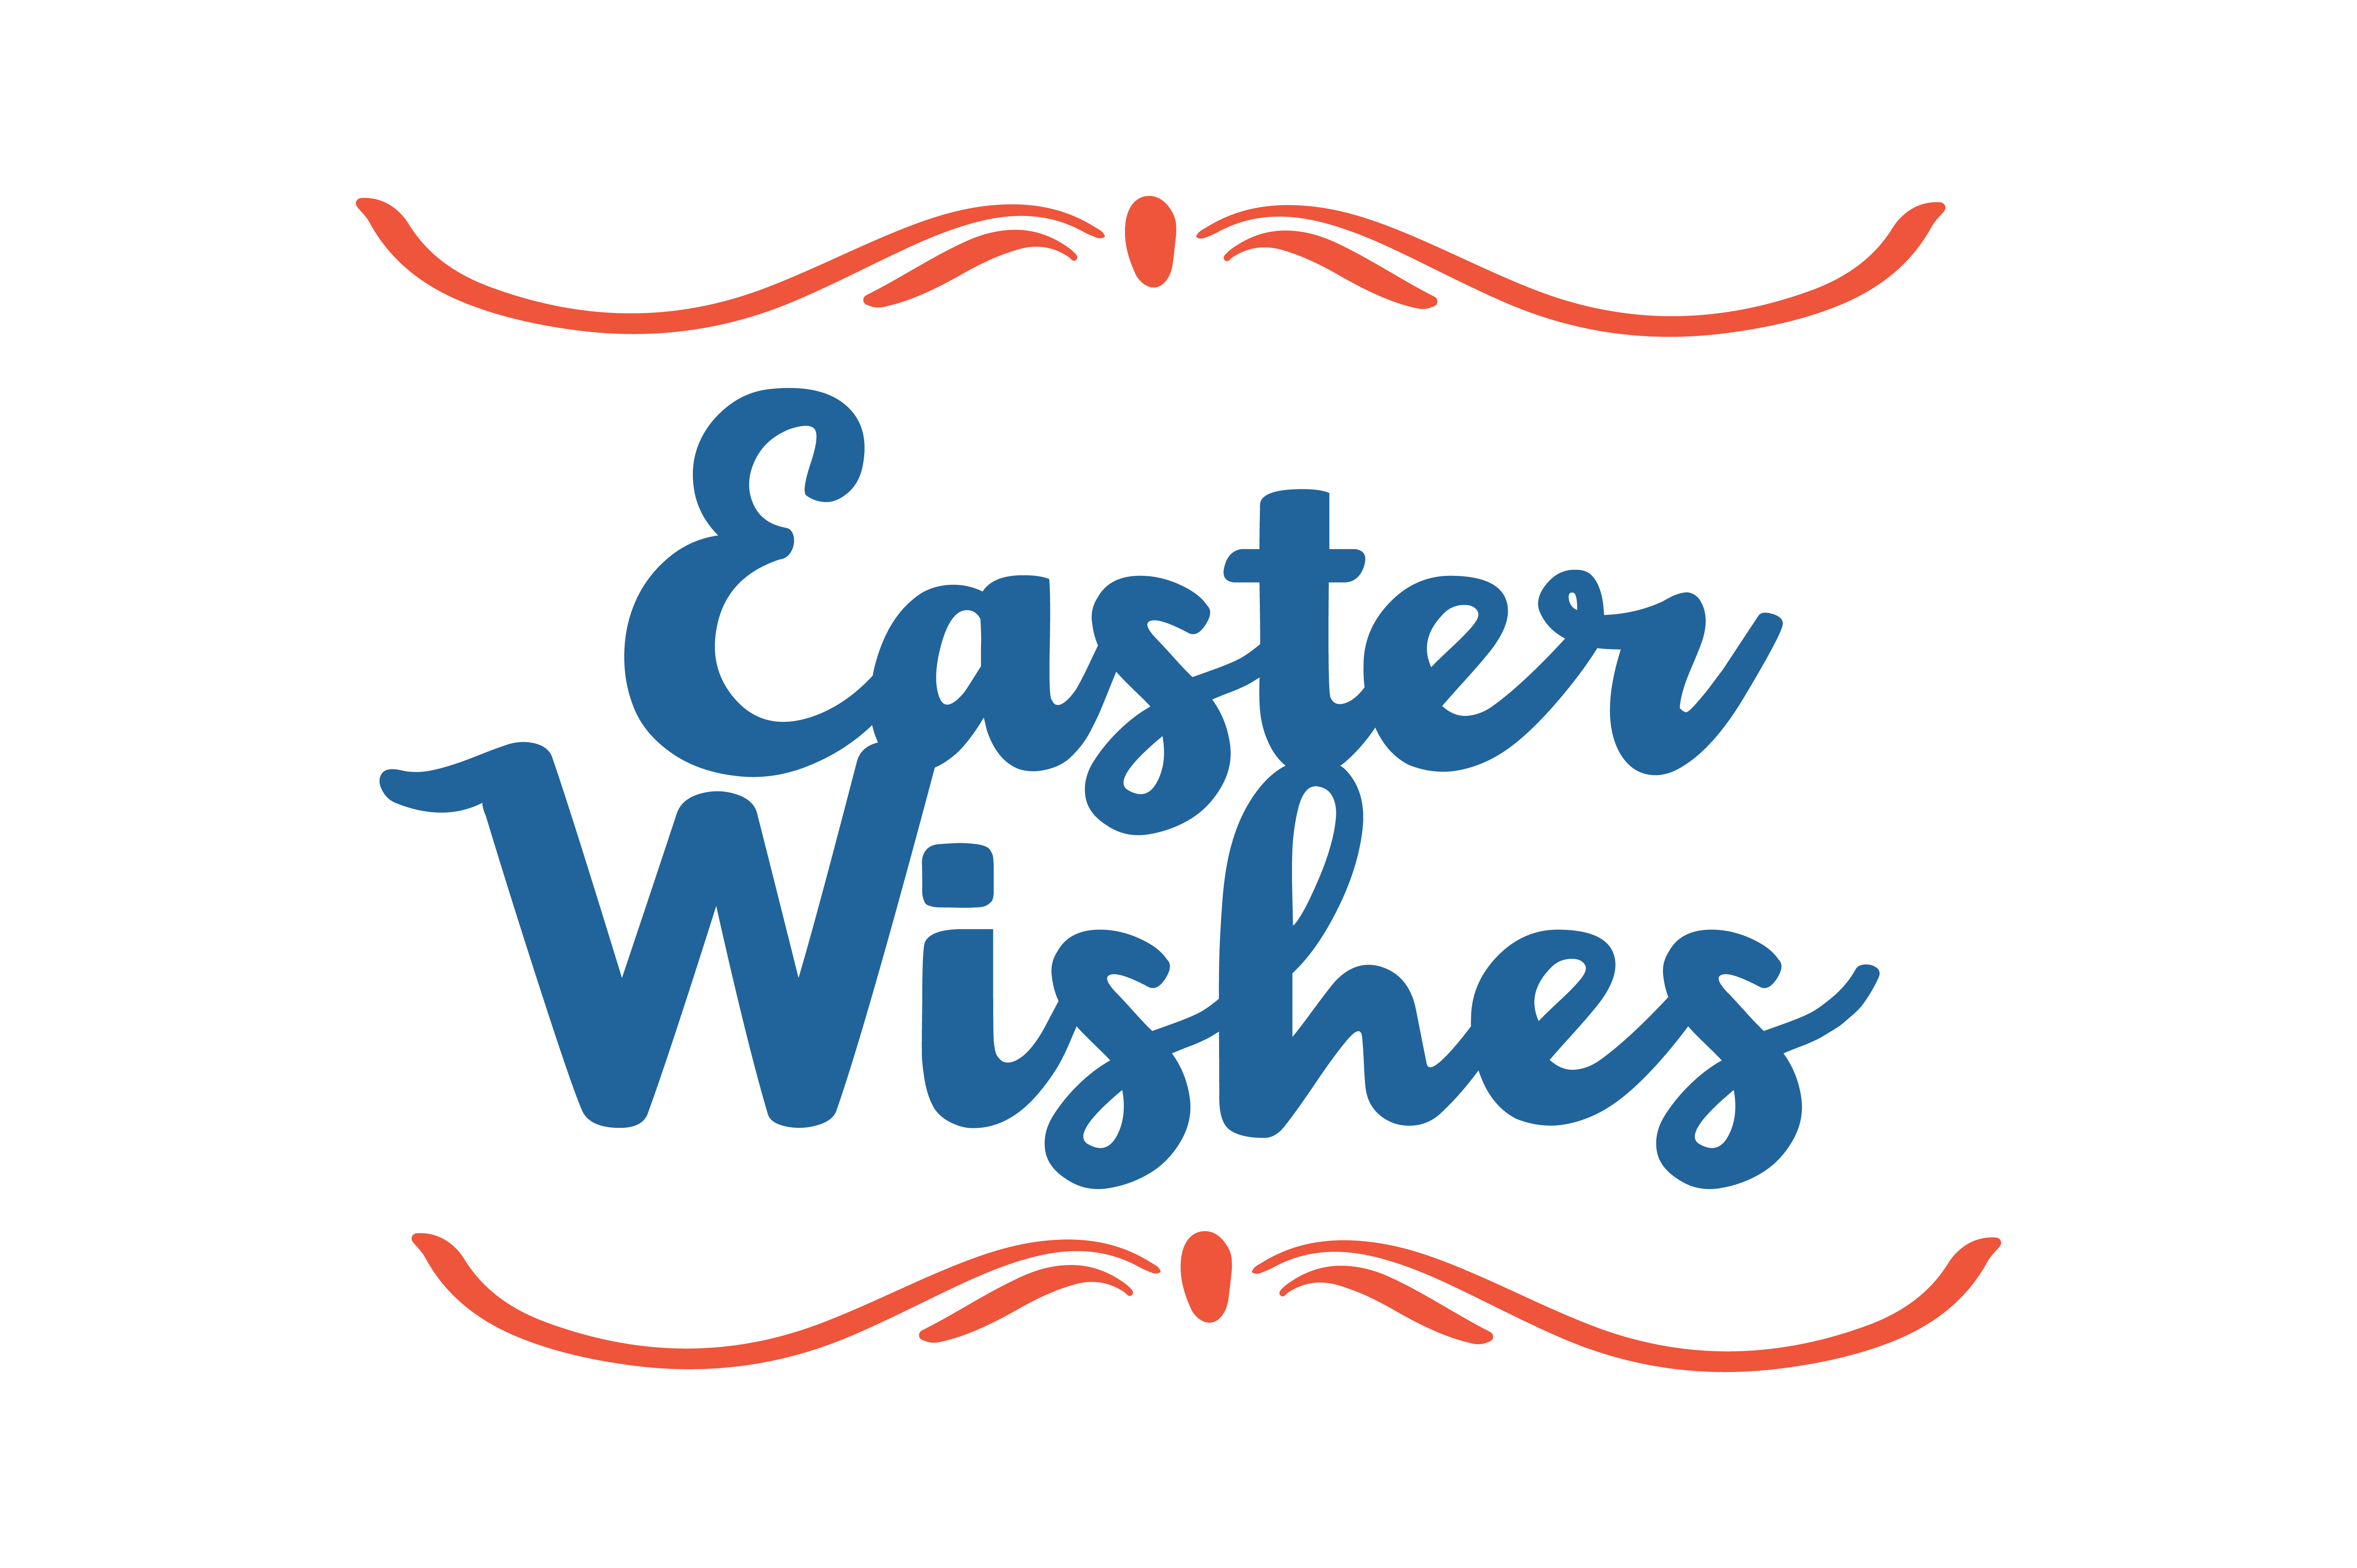 Download Free Easter Wishes Quote Svg Cut Graphic By Thelucky Creative Fabrica for Cricut Explore, Silhouette and other cutting machines.